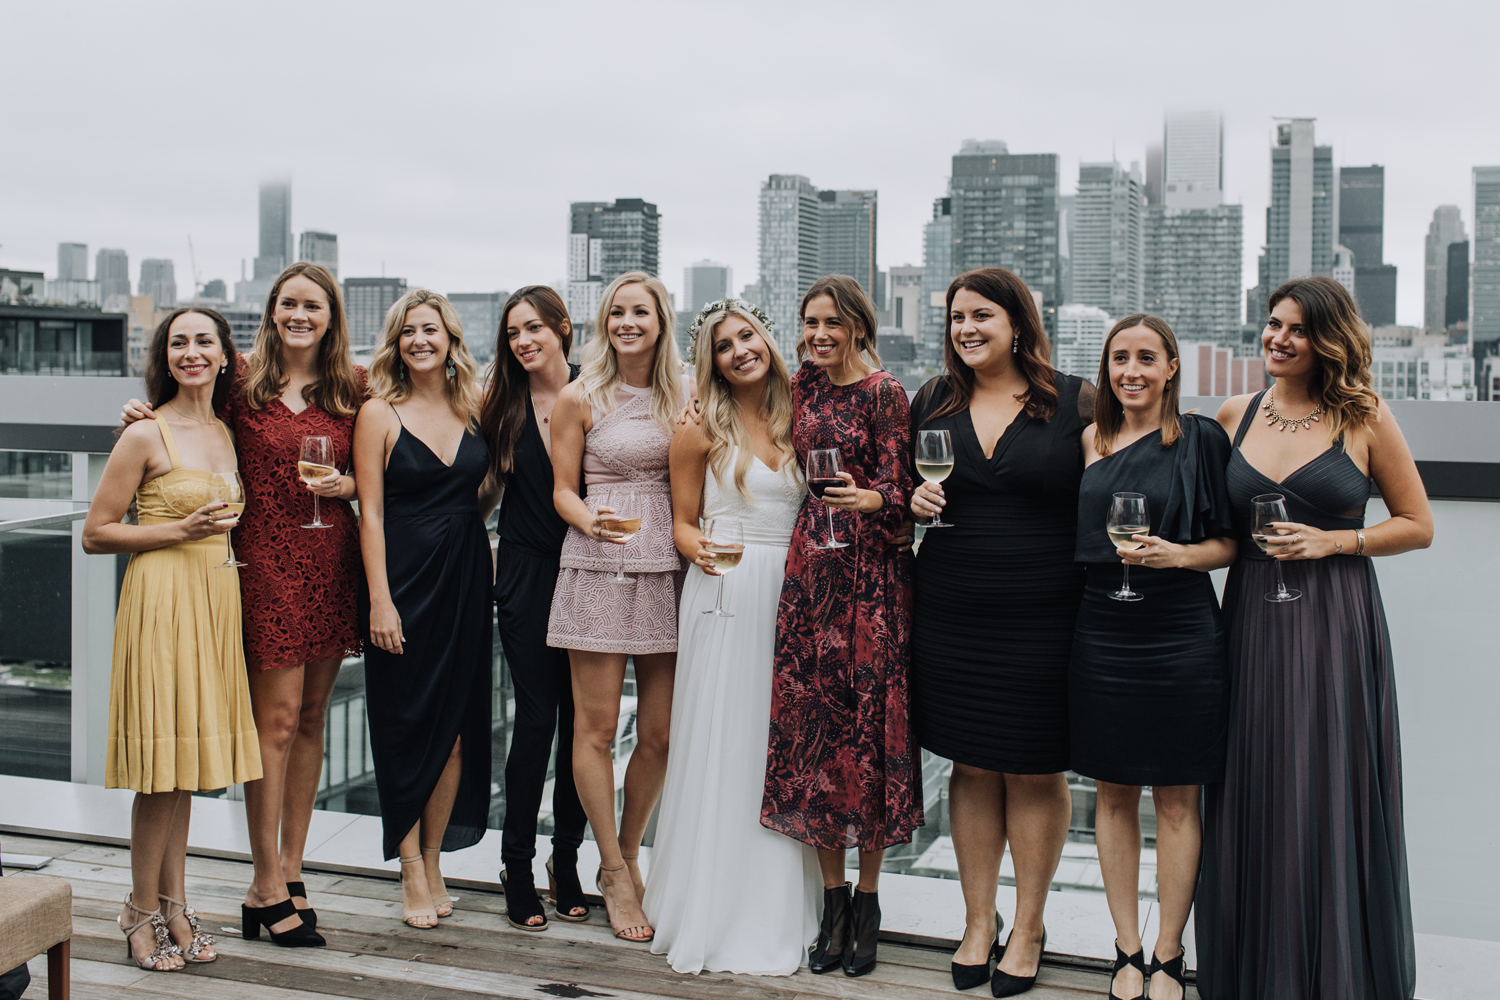 Toronto Thompson hotel rooftop wedding reception